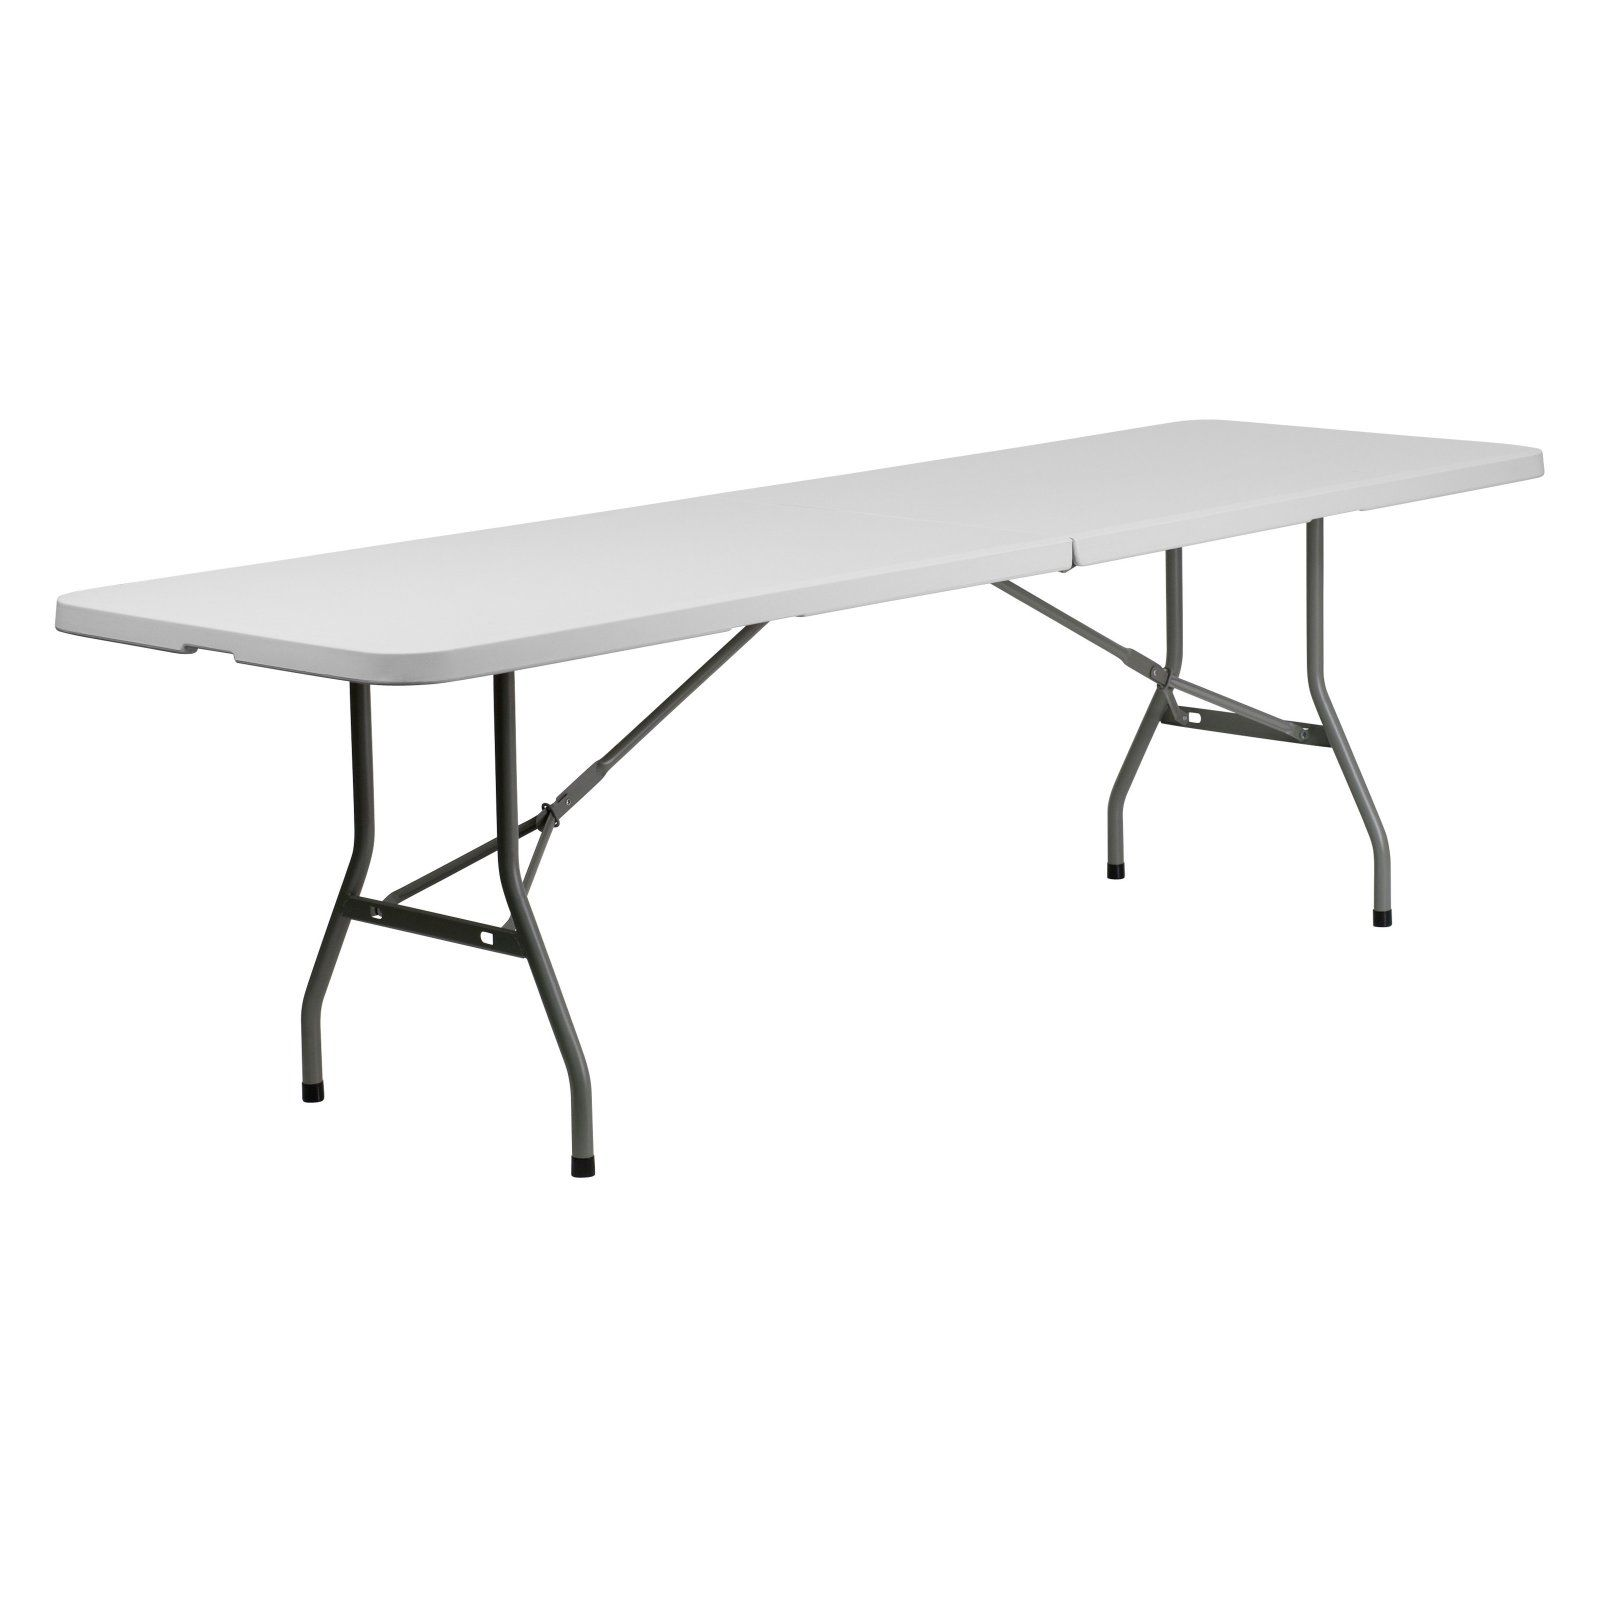 Details About Bcp 4ft Portable Folding Plastic Dining Table W